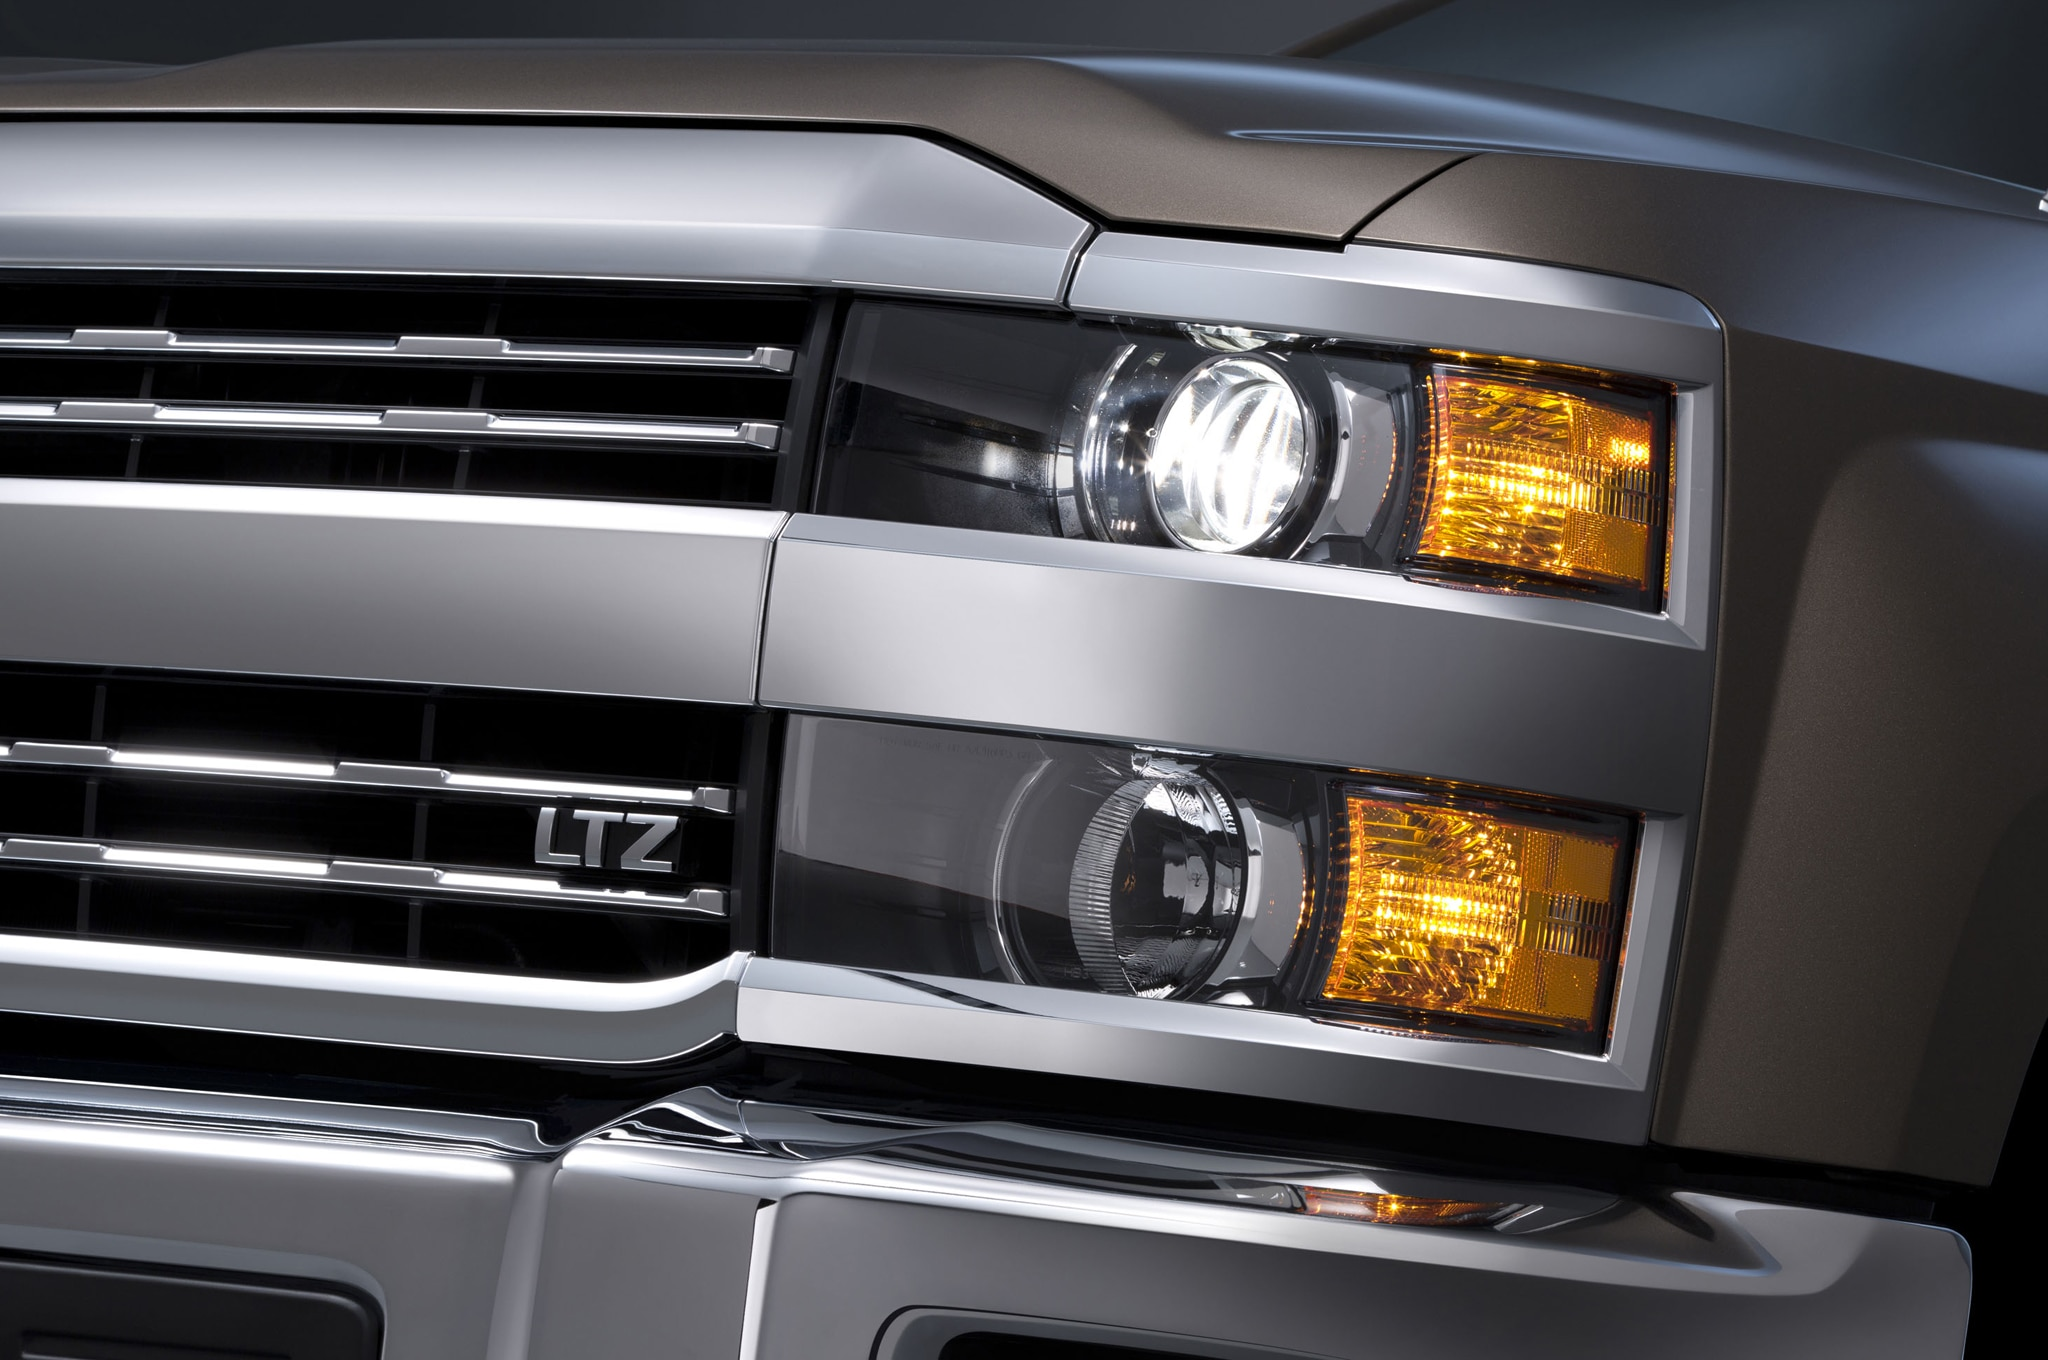 2015 Chevrolet Silverado 3500HD headlight